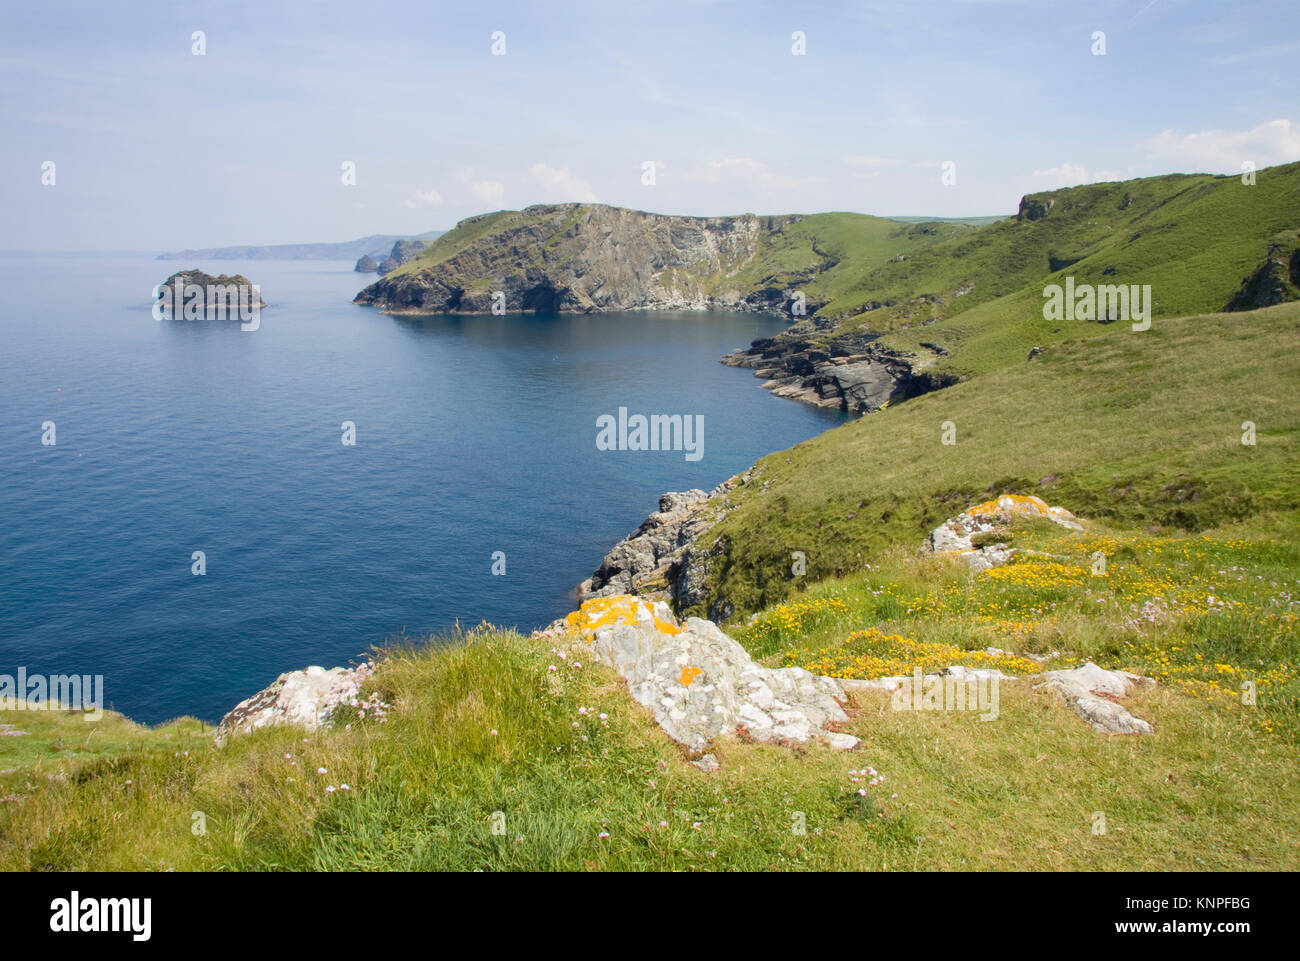 Looking along the coastline from Barras Nose towards The Sisters islands. North Cornwall, England. - Stock Image